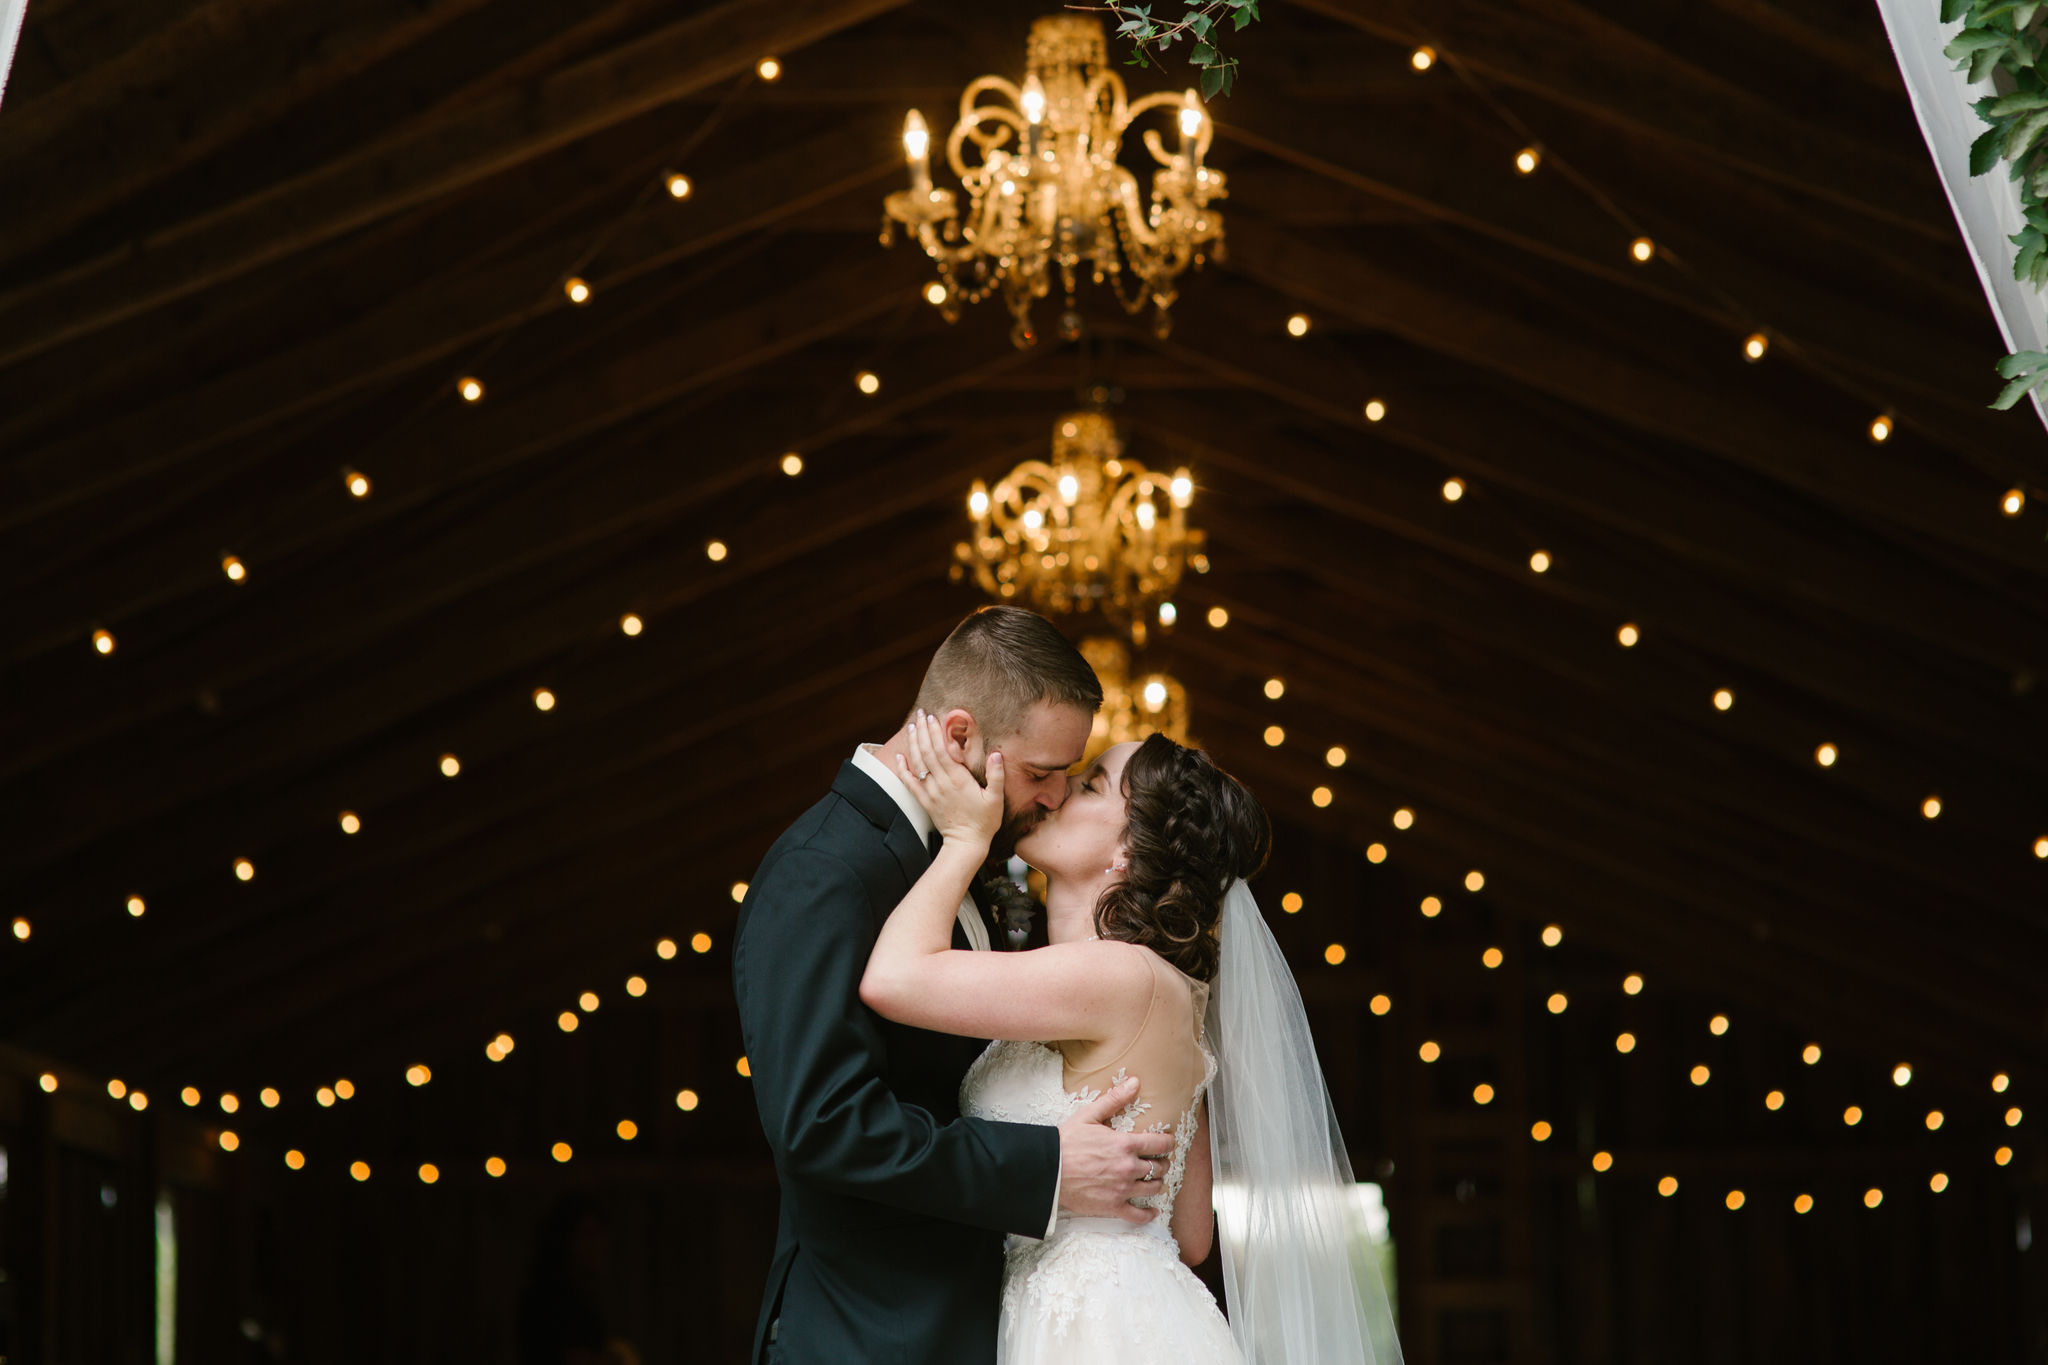 Kellsey&JasonWedding(Final)-173.jpg